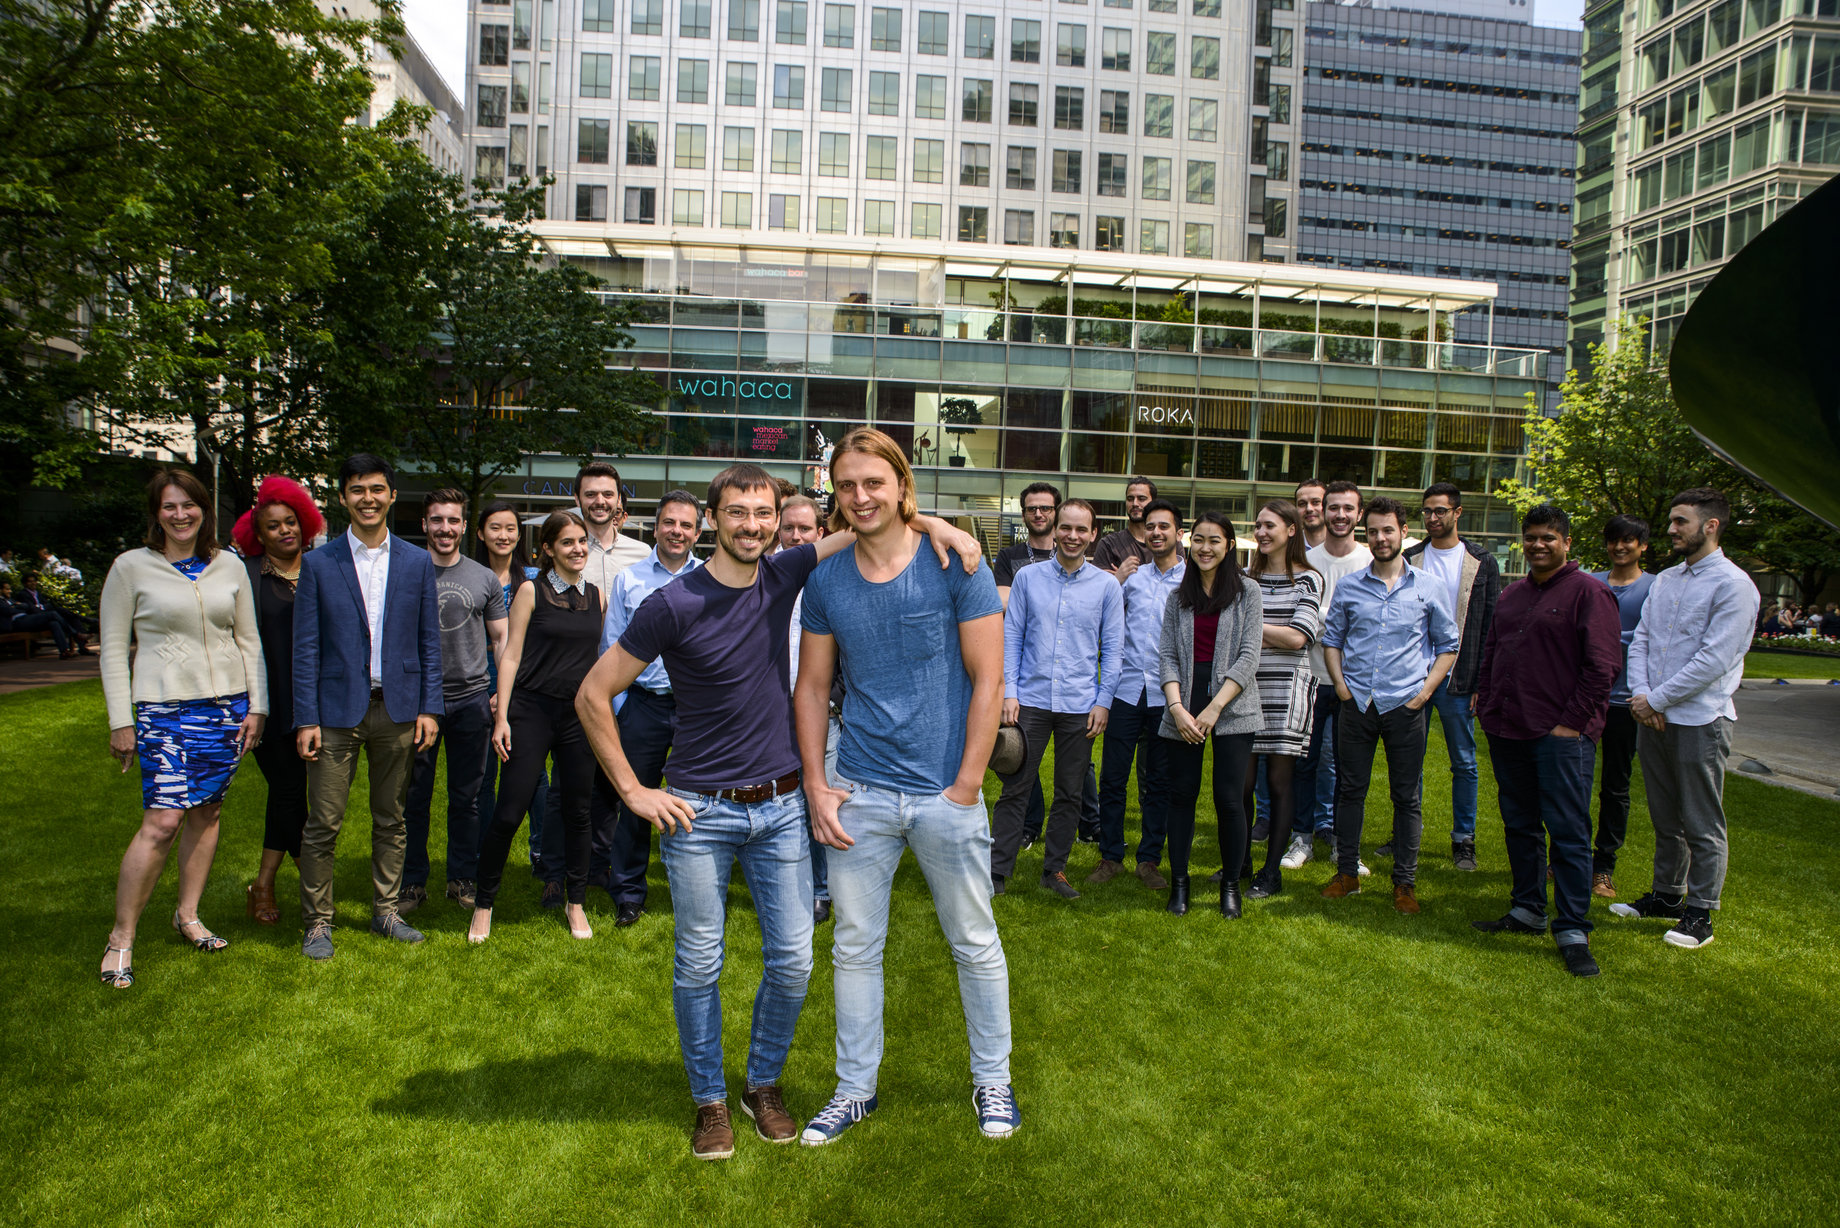 Revolut partners with peer-to-peer lender on instant credit offering